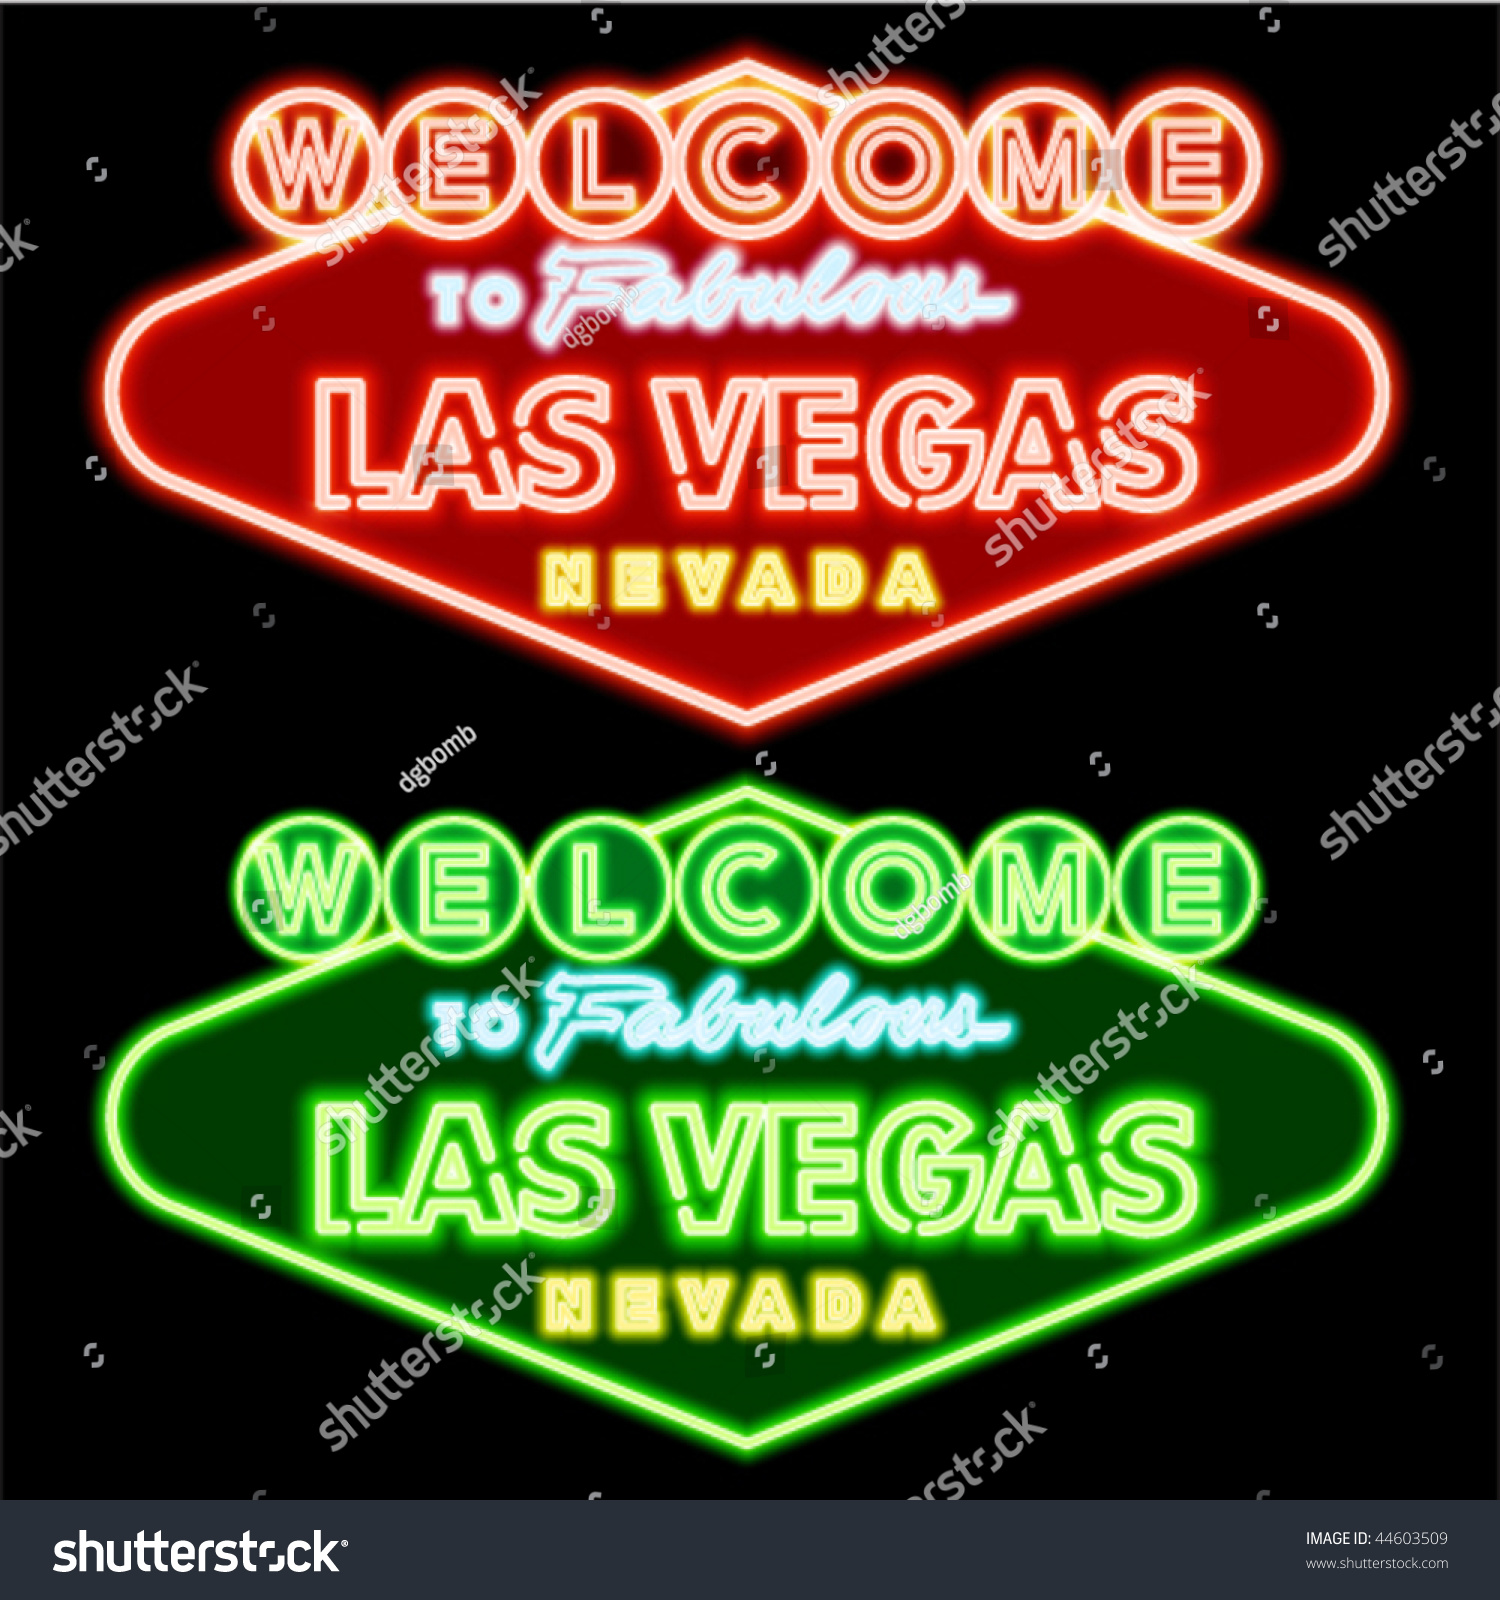 Stock footage welcome to fabulous las vegas sign with flashing lights - Neon Las Vegas Road Sign